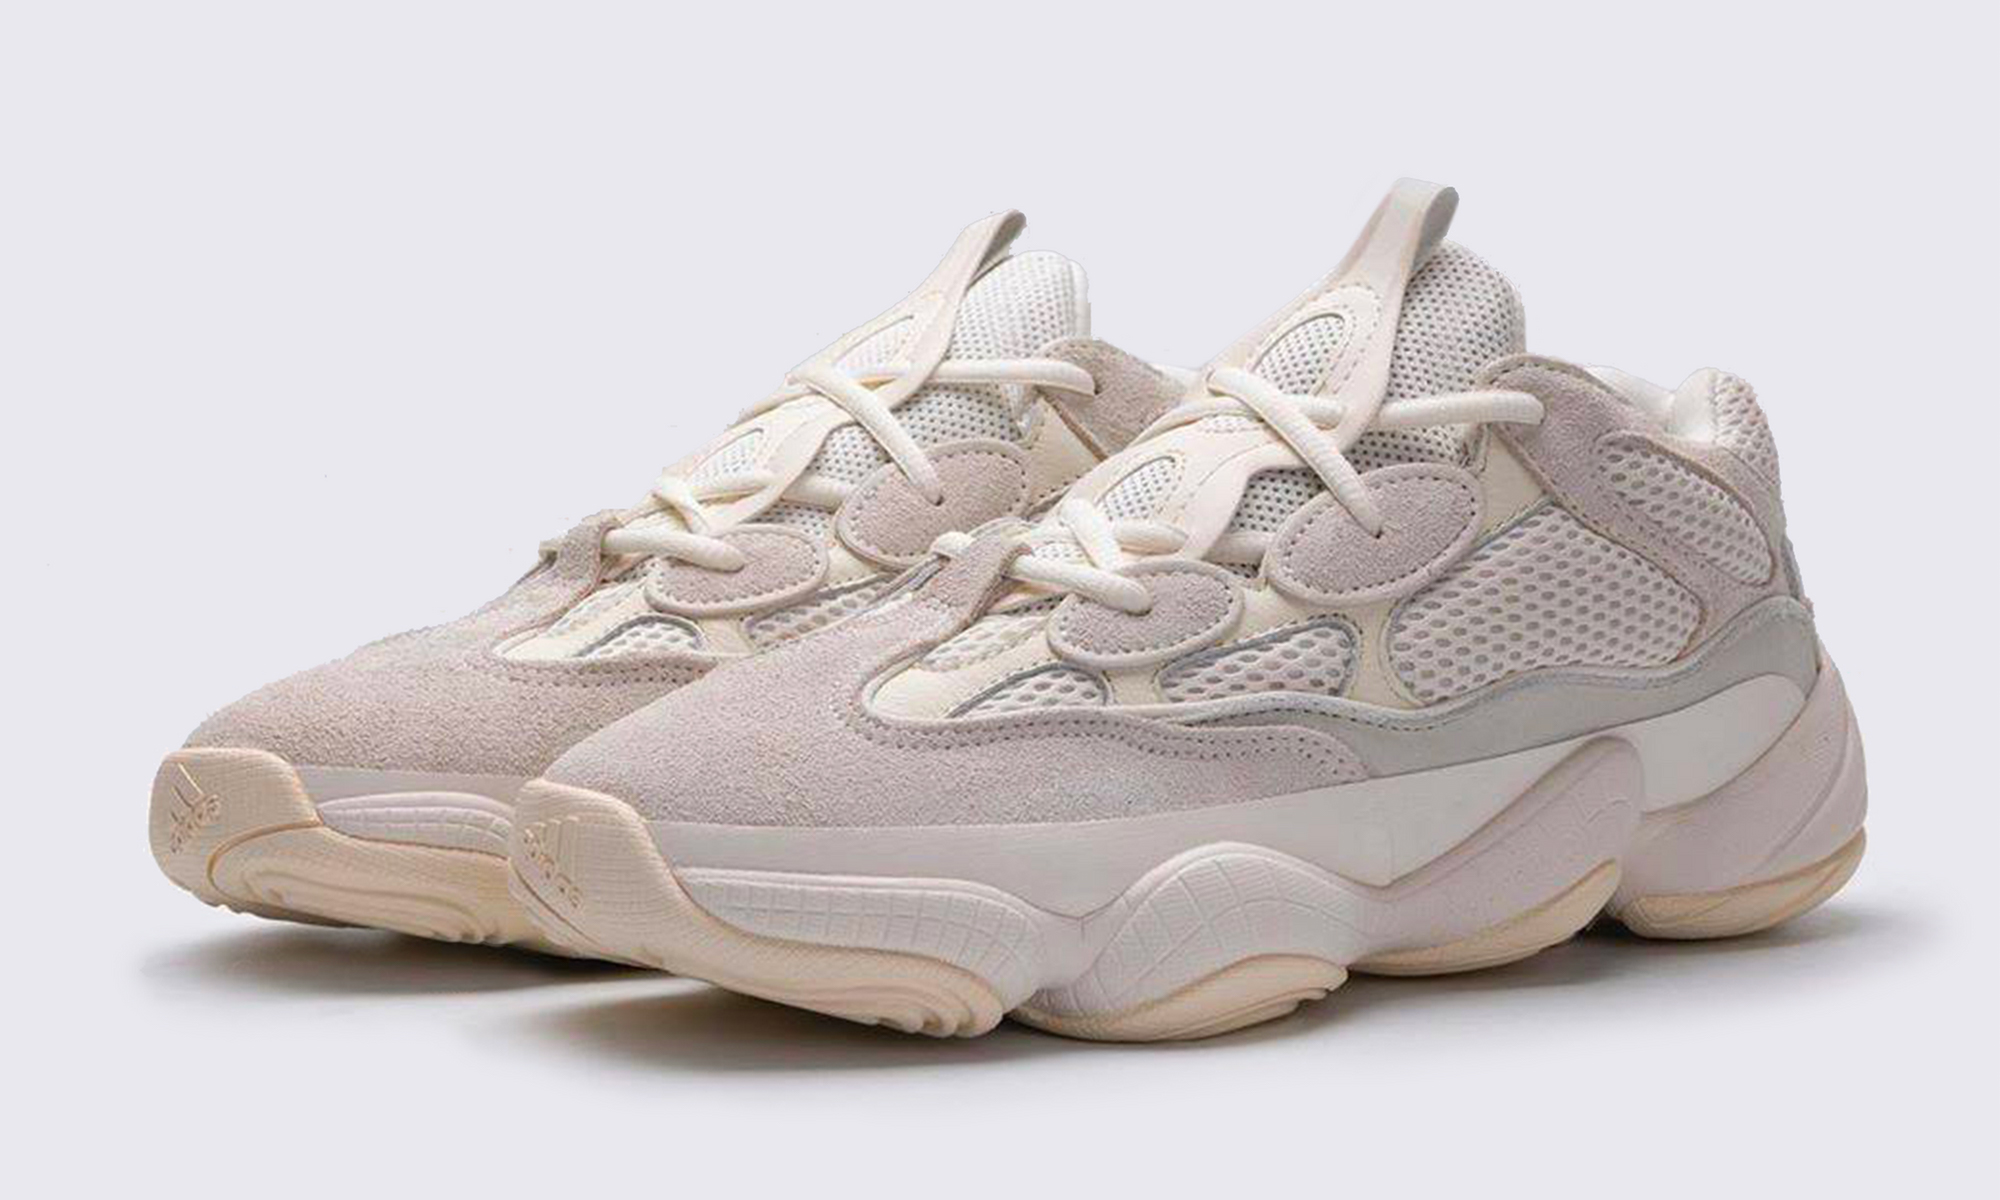 "近赏全新 Yeezy 500 ""Bone White"" 配色"